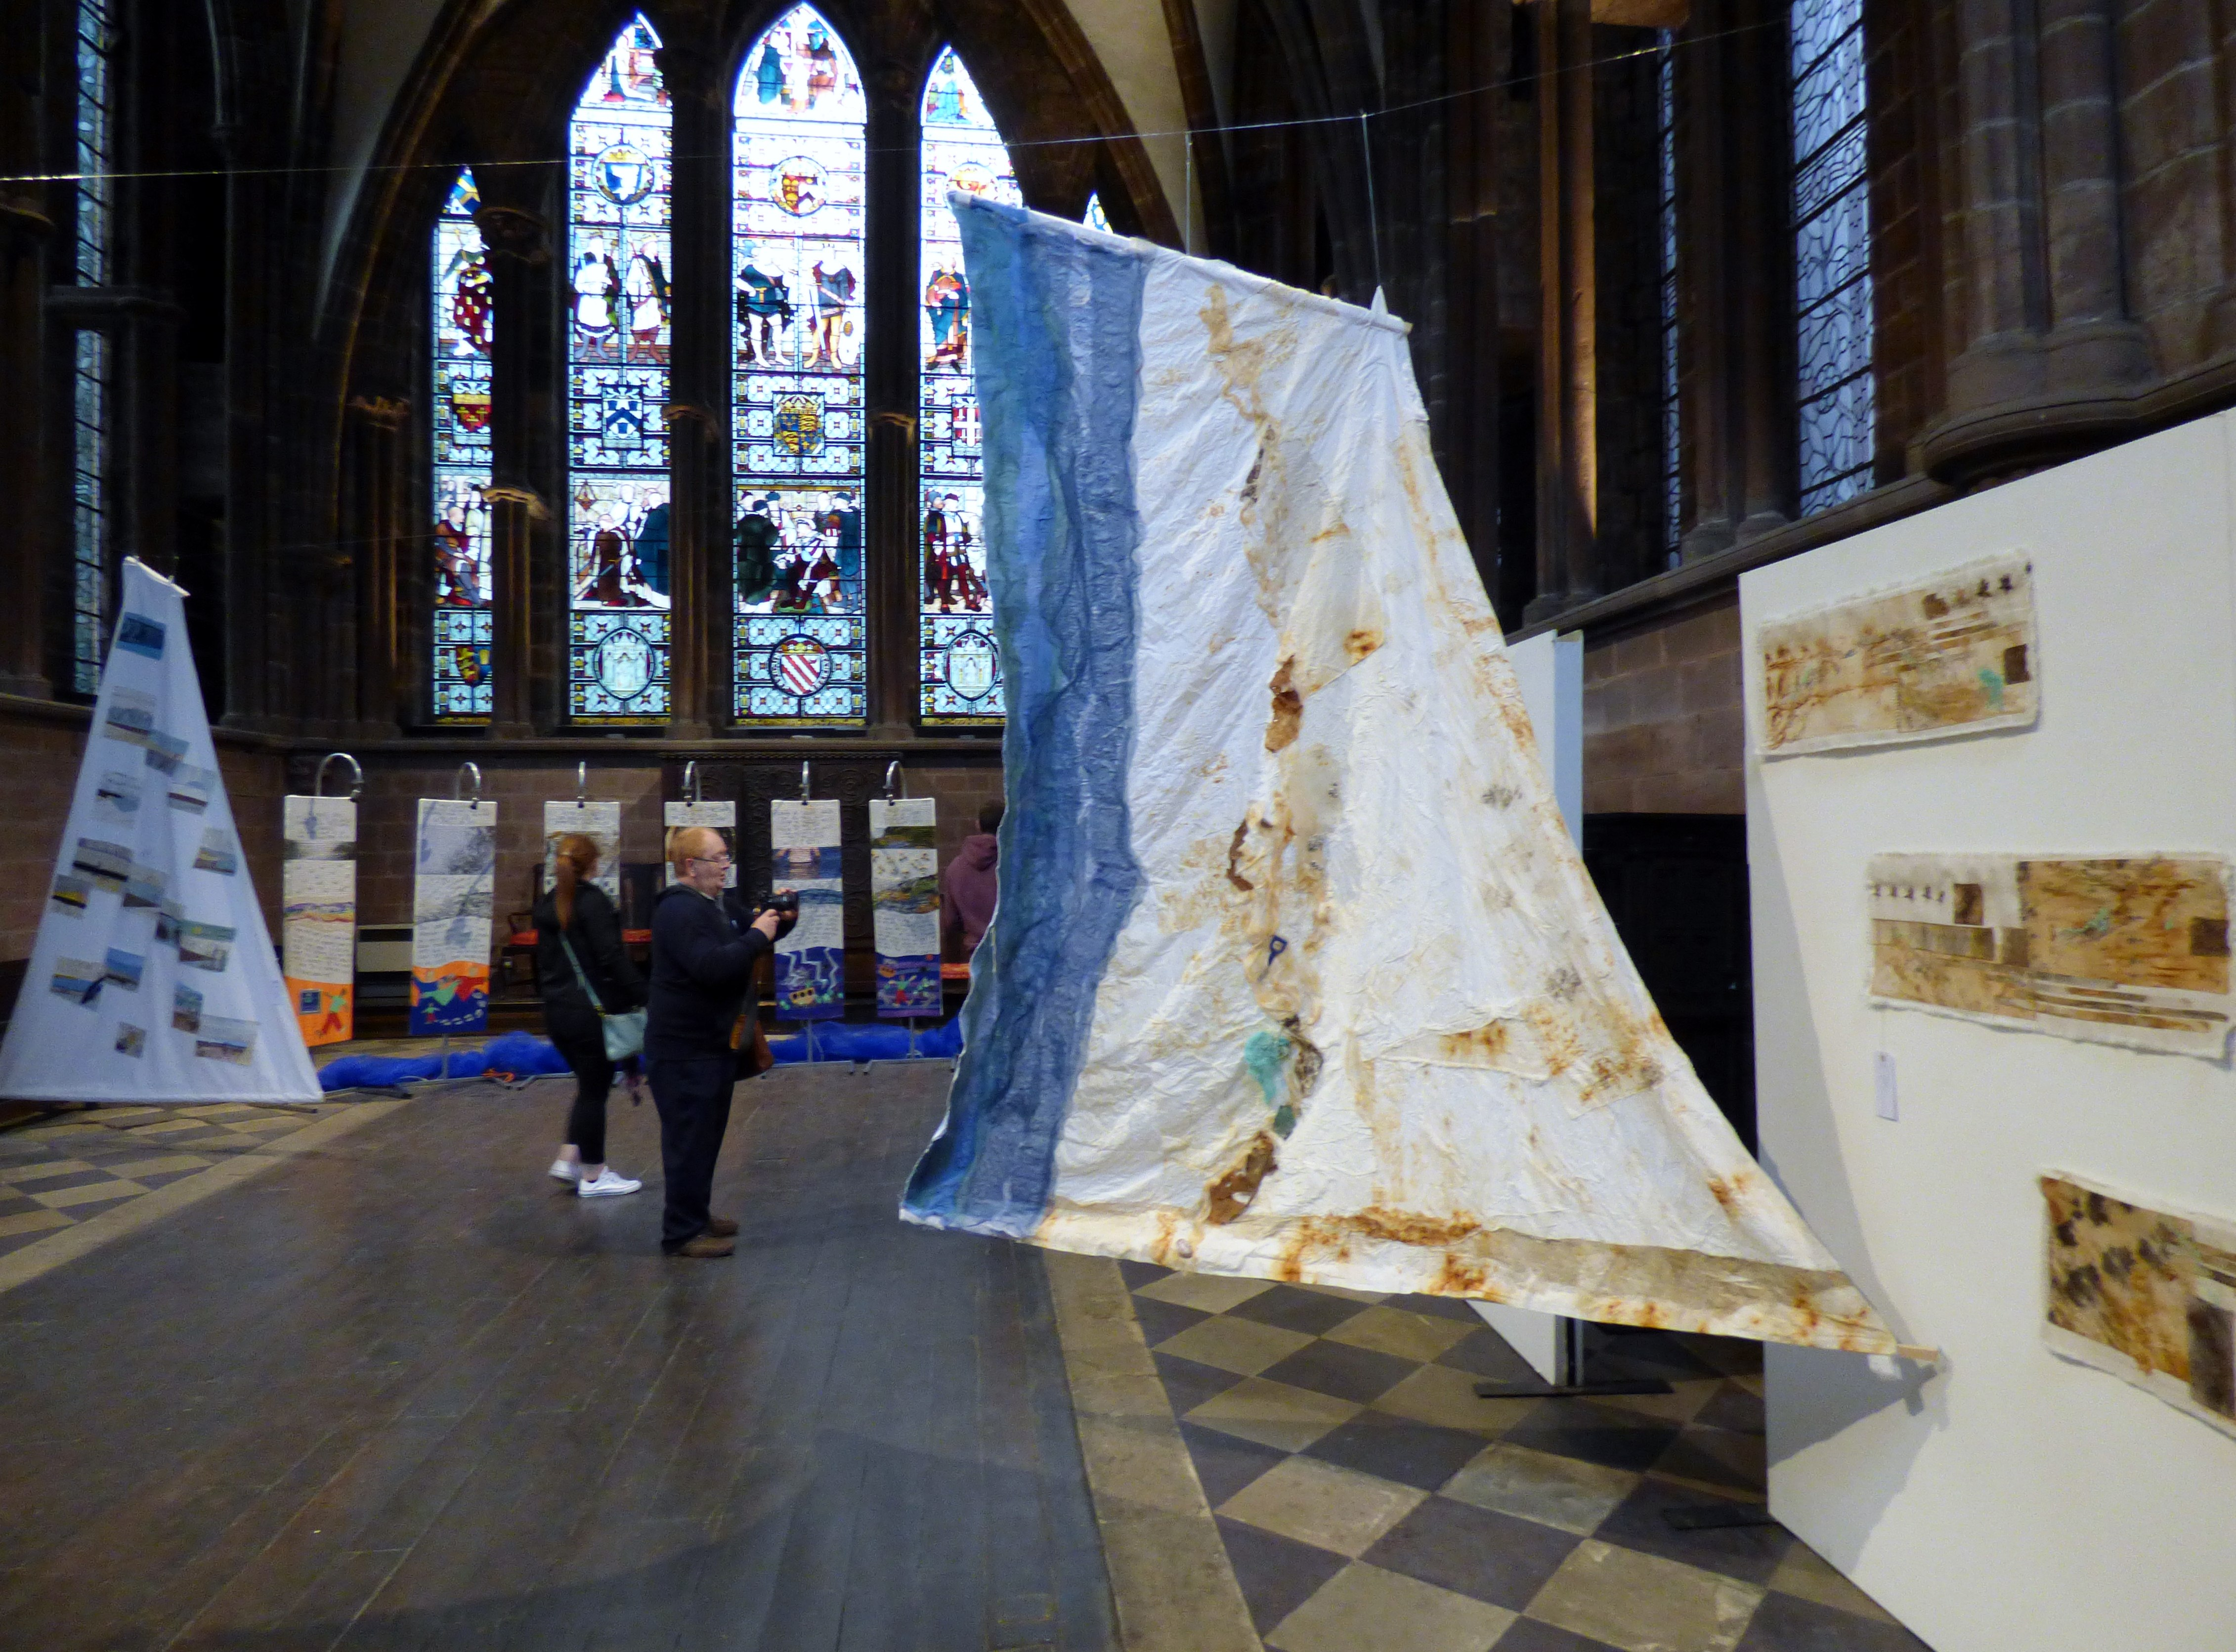 ON THE EDGE OF THE SEA by Sue Reeve, fabrics and stitch with found objects, Textile 21, Chester Cathedral 2019